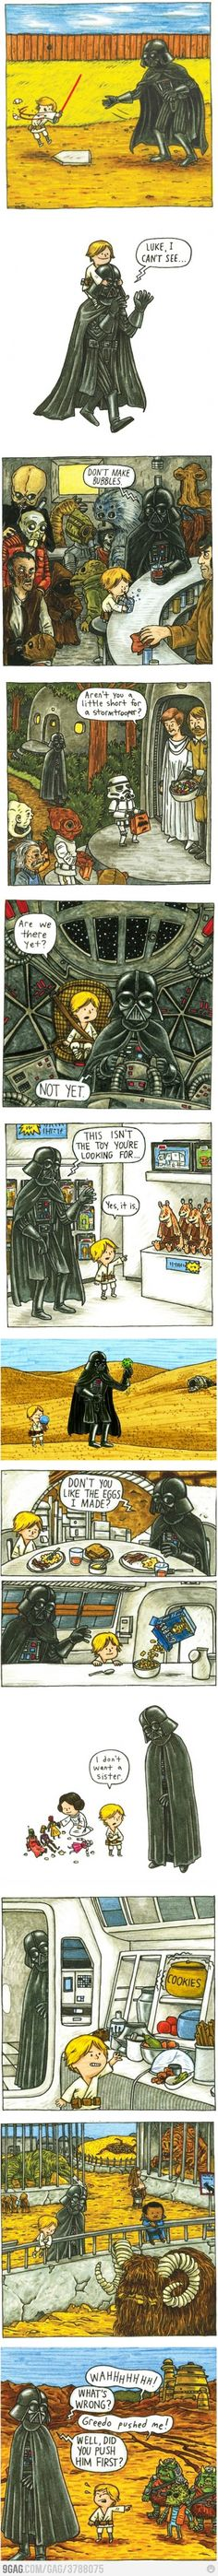 If Darth Vader had been a good father... #humor